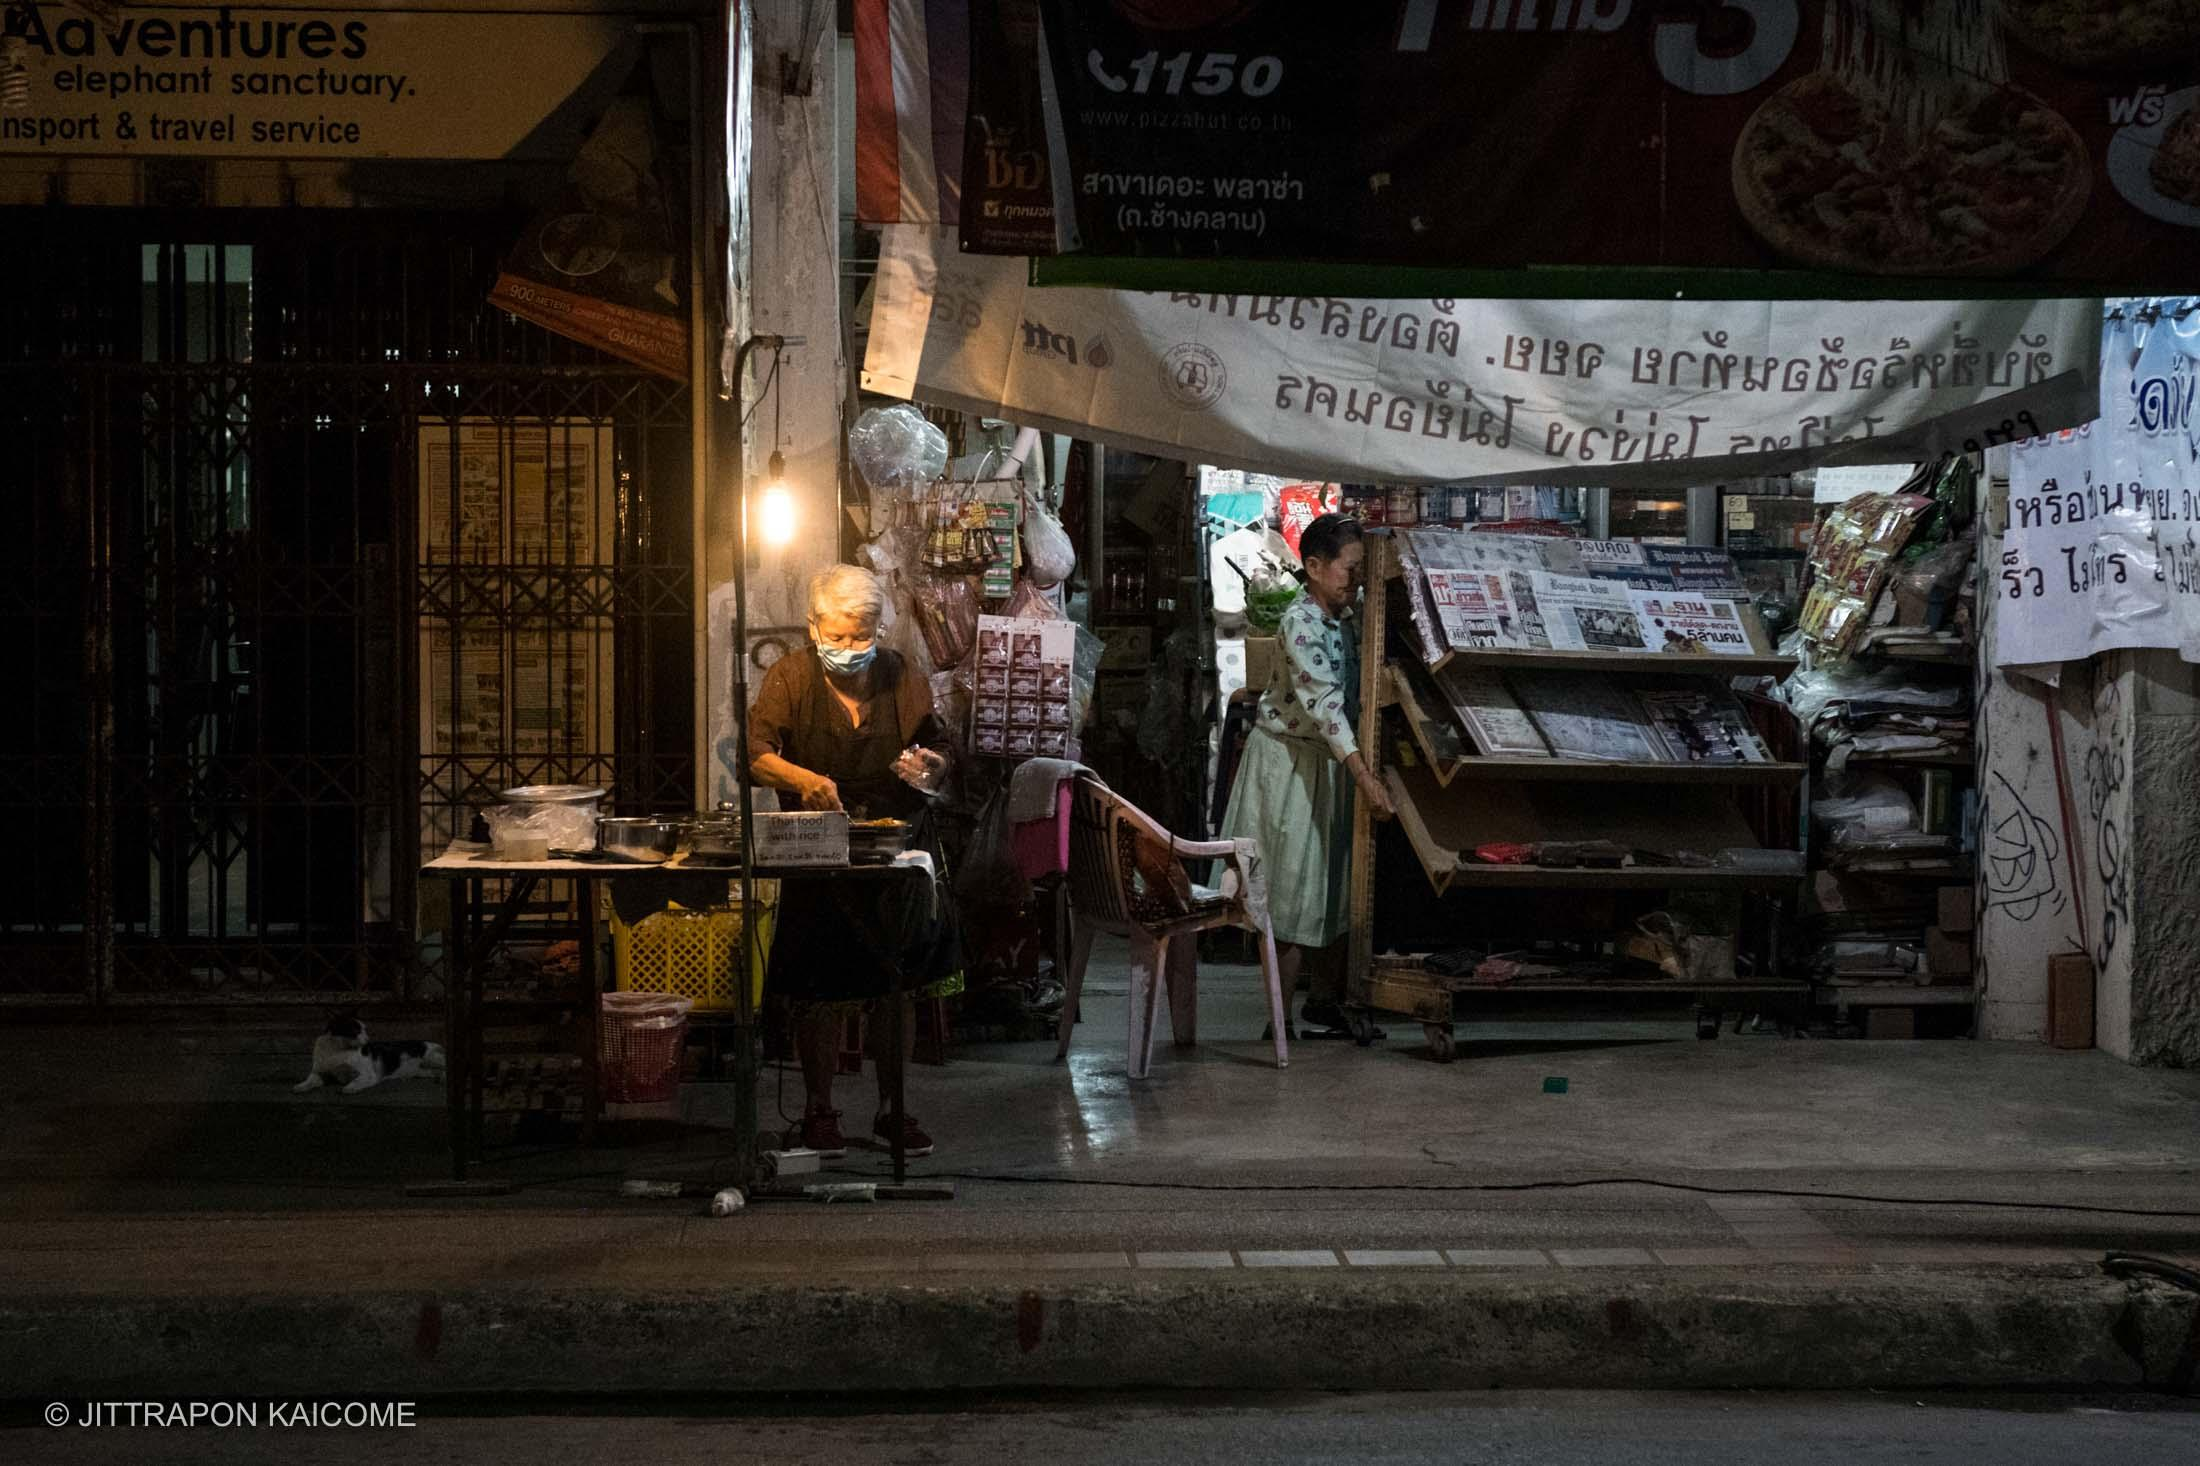 07.34 PM - Early closing from lack of customers due to Coronavirus outbreak. Chiang Mai, Thailand in March 25,2020.